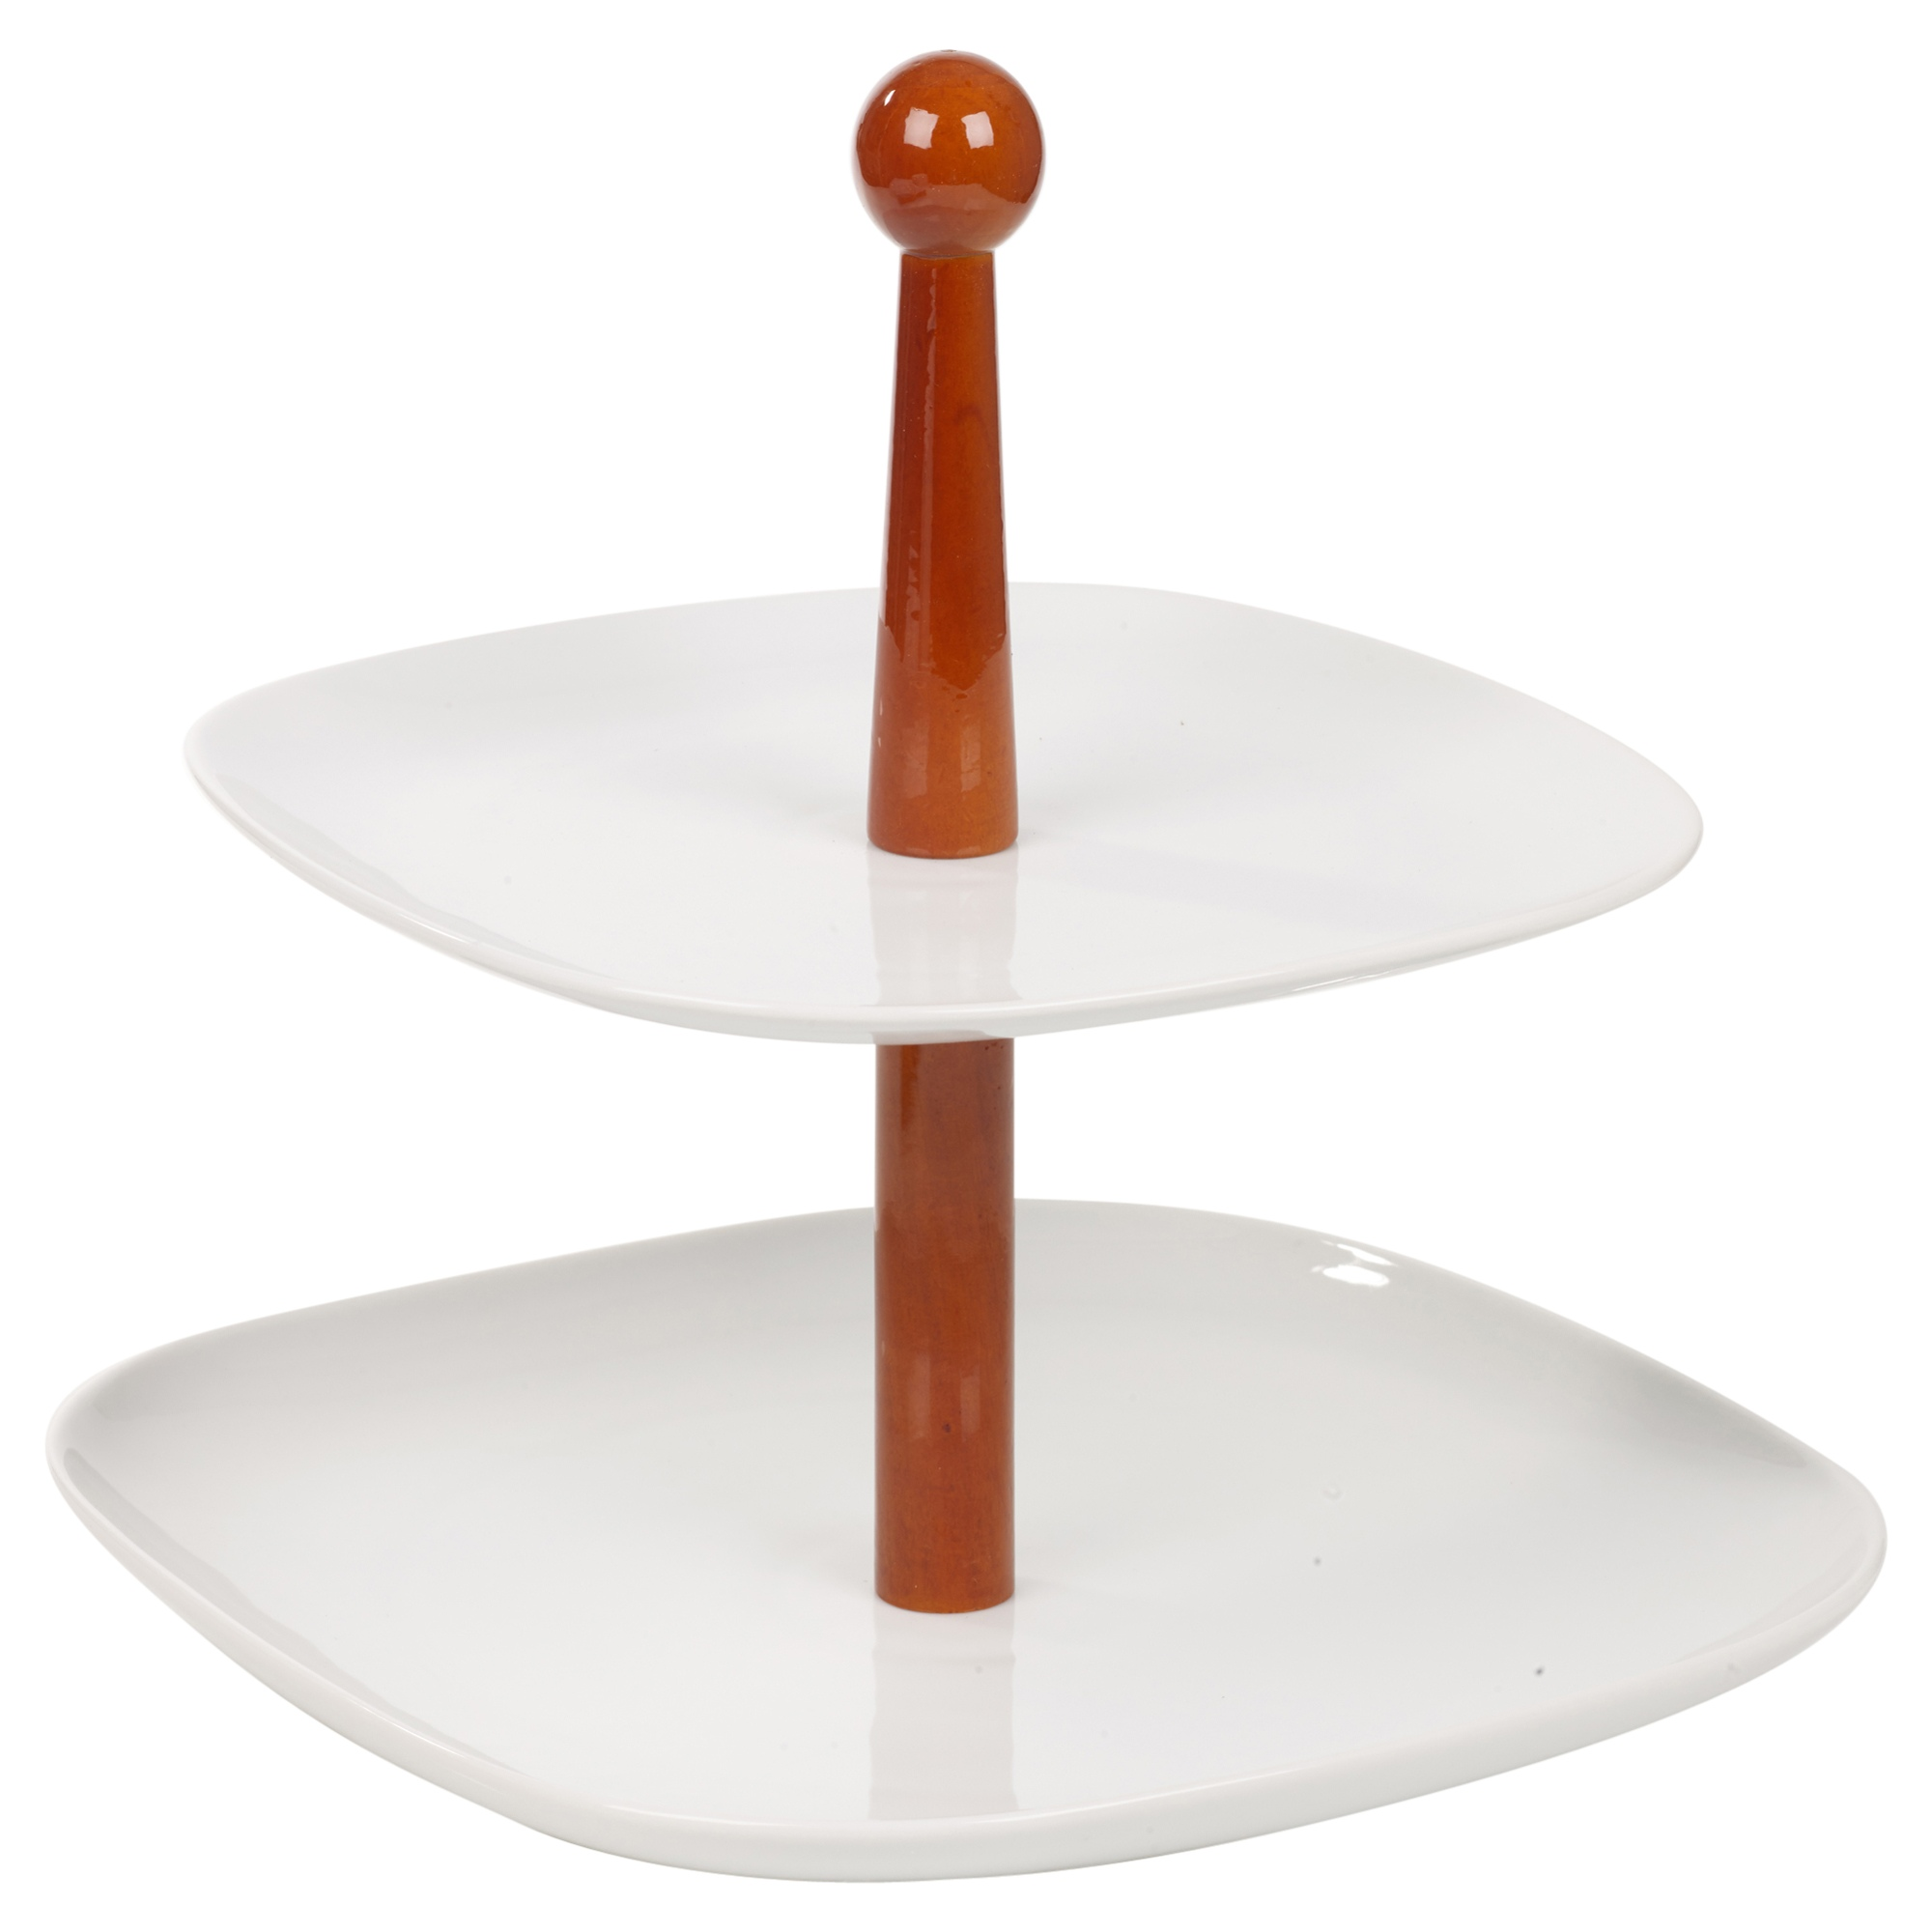 2 layer tier ceramic wooden serving display cakes platter for Canape display stands